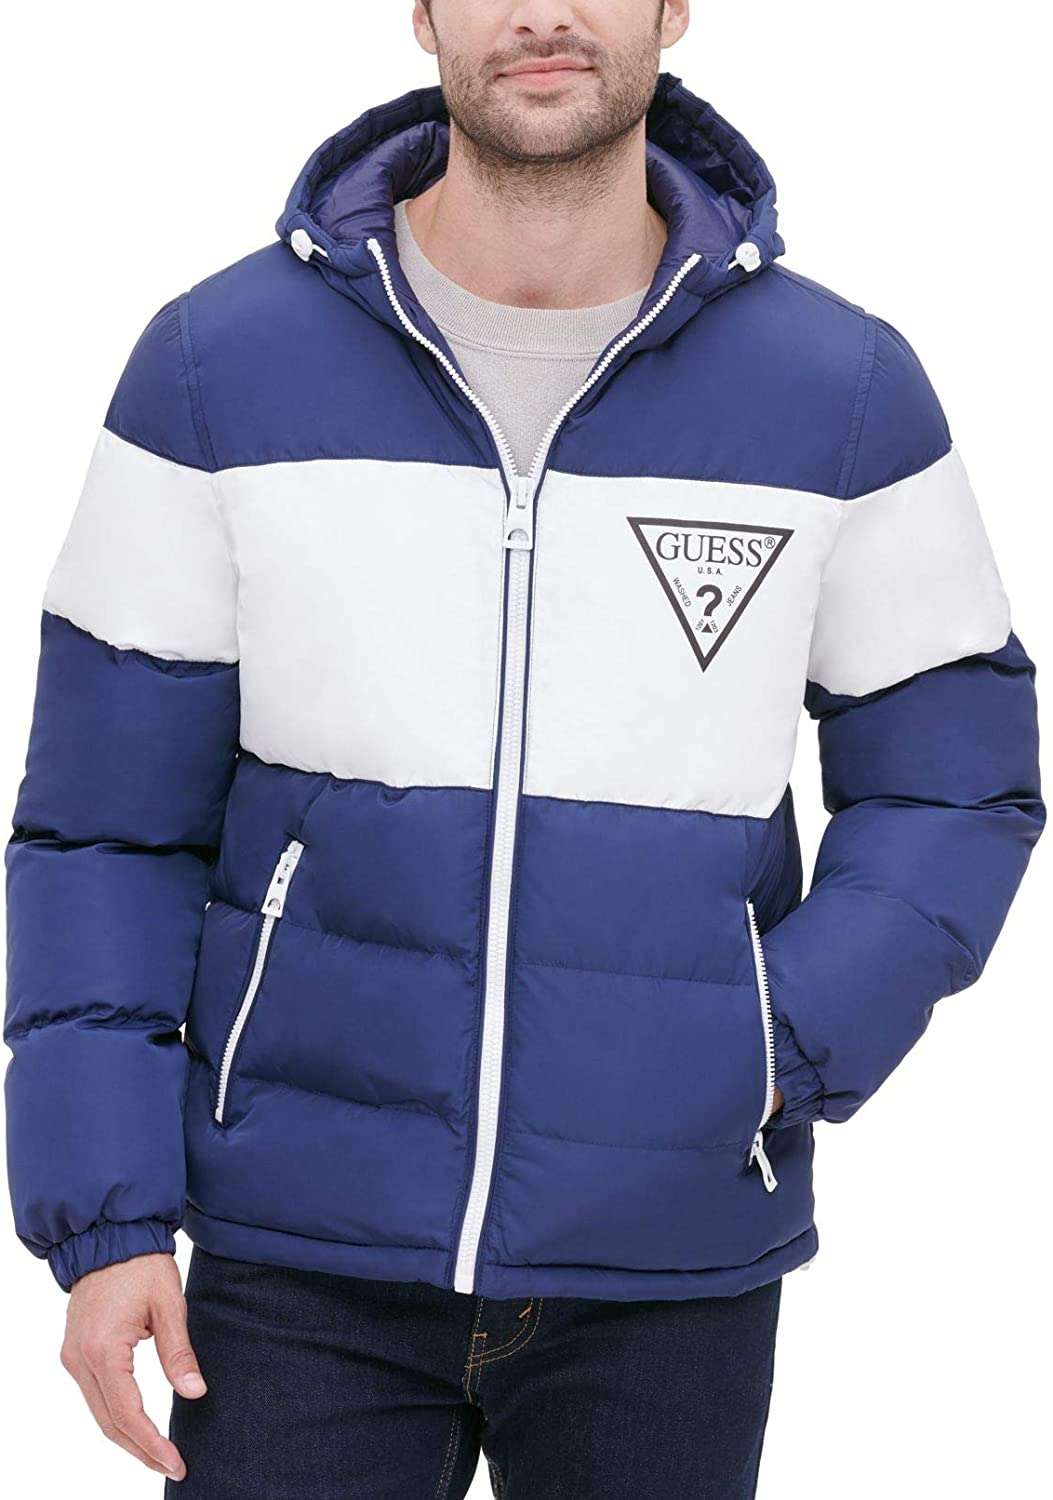 GUESS Men's Color Block Hooded Puffer Jacket